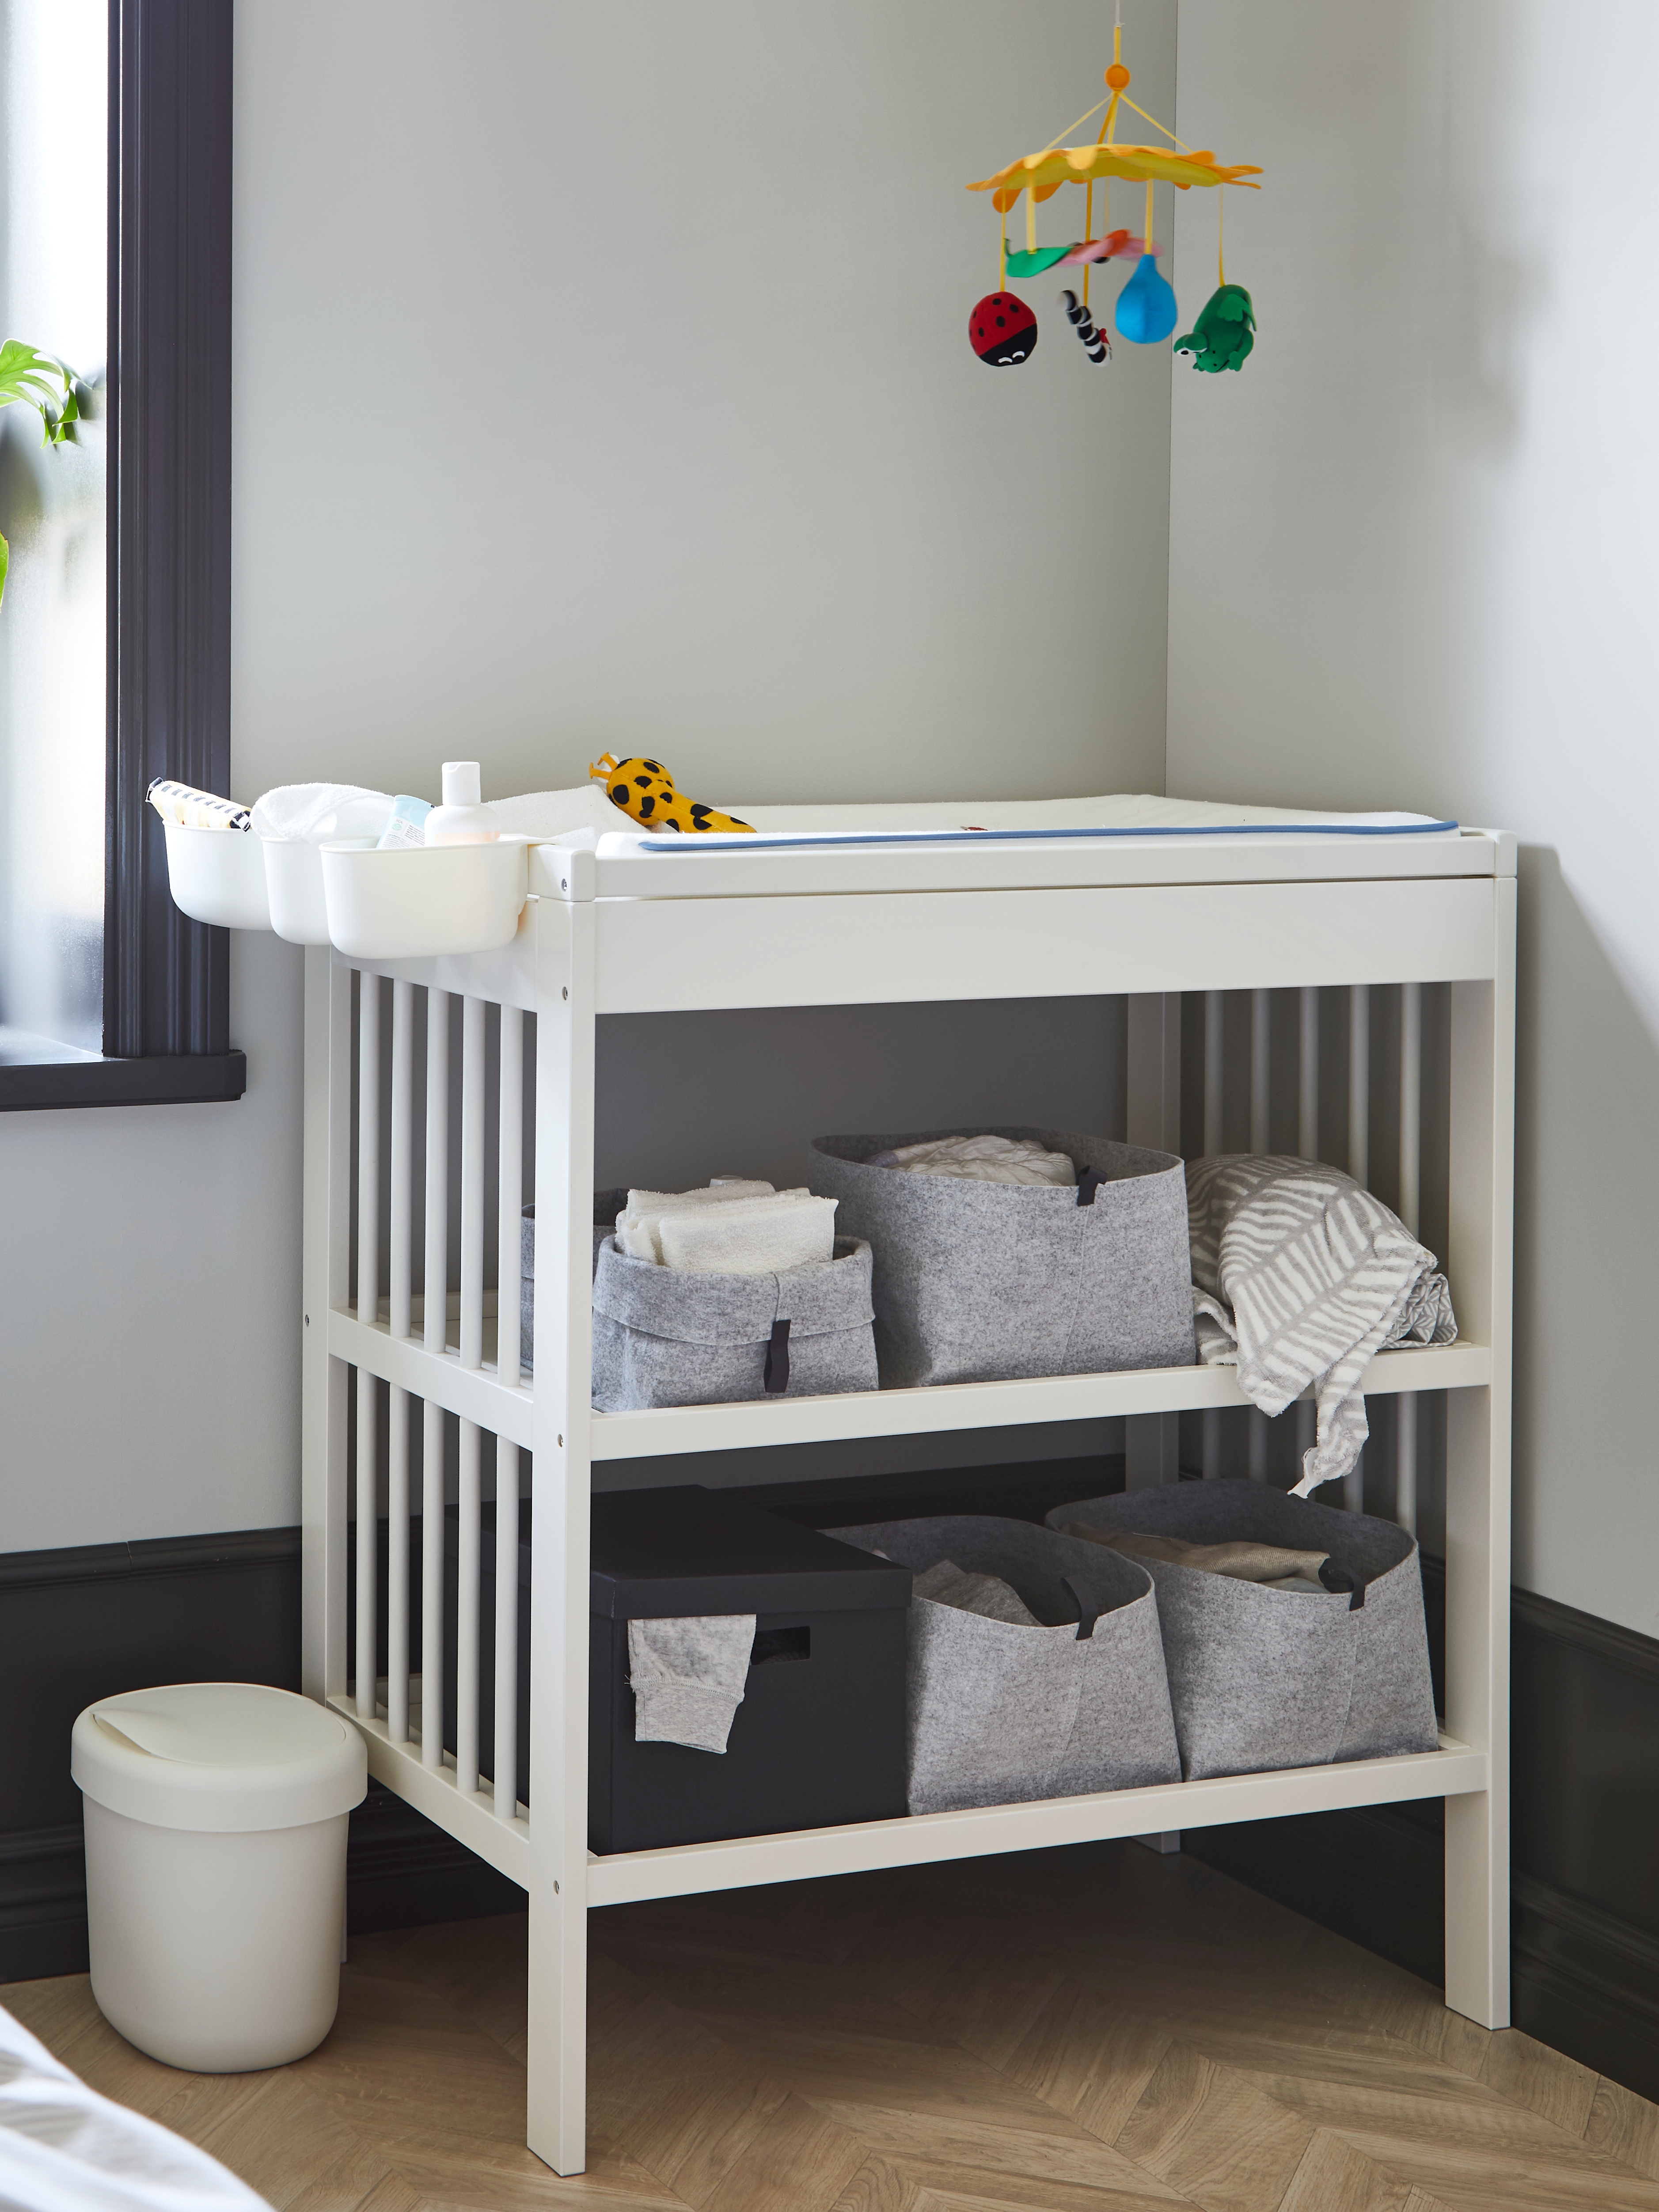 A white GULLIVER changing table with open felt boxes on its shelves and plastic racks of changing supplies hanging on an end.